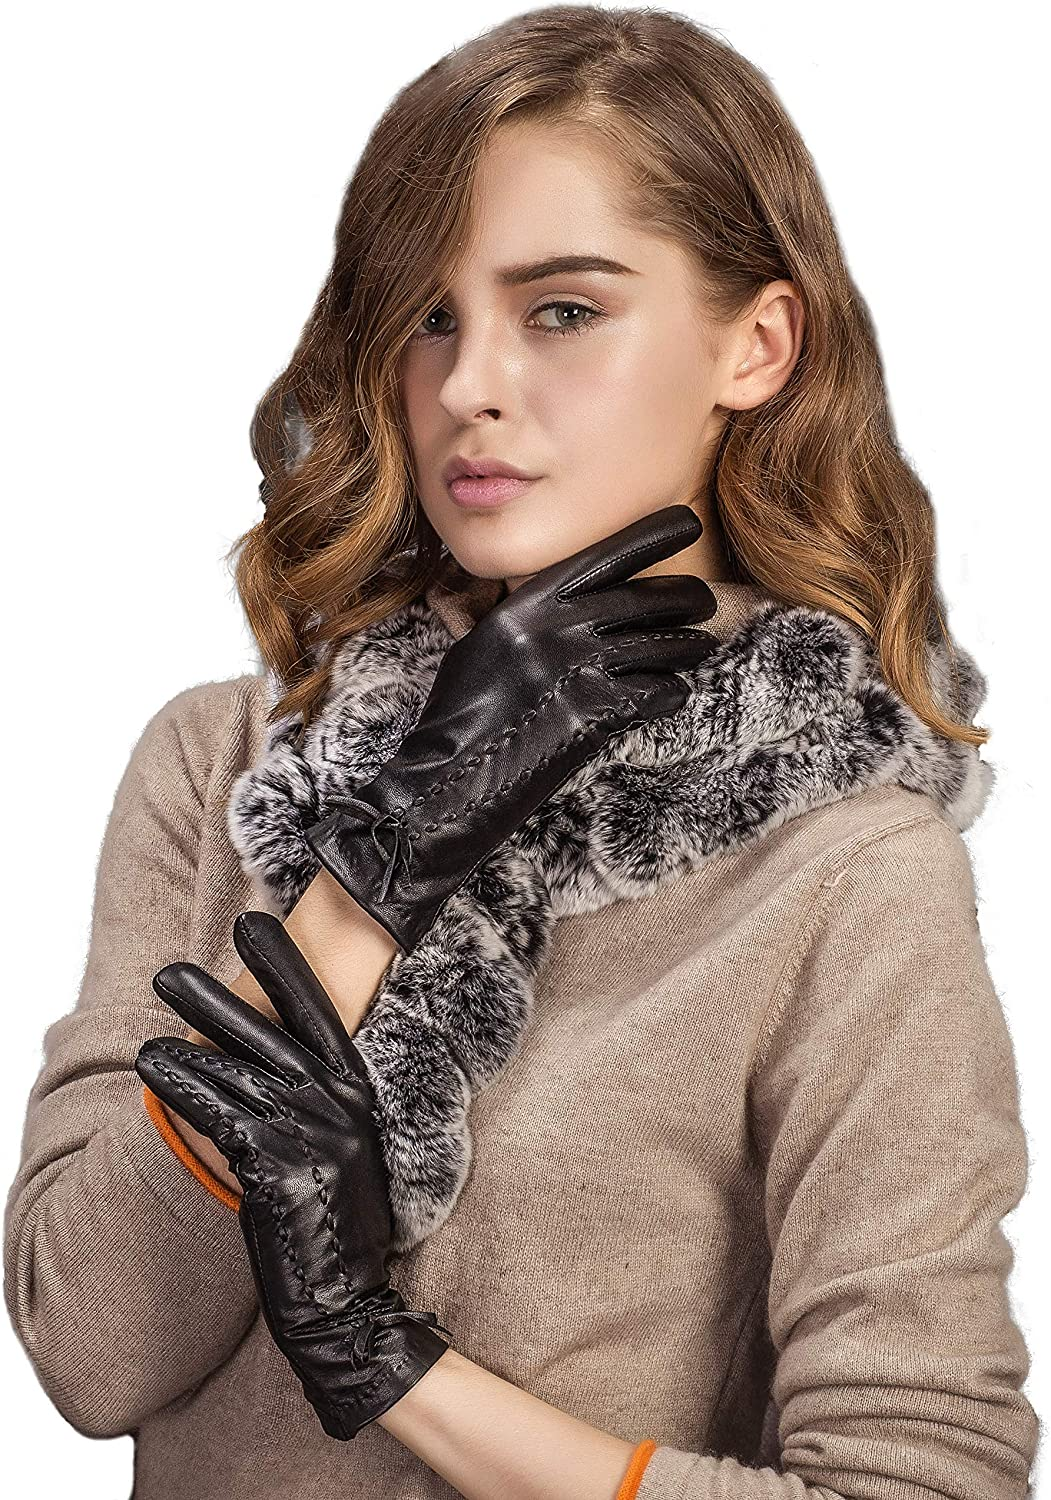 YISEVEN Women's Winter Touchscreen Driving Leather Gloves Fleece Lined Bow Knot